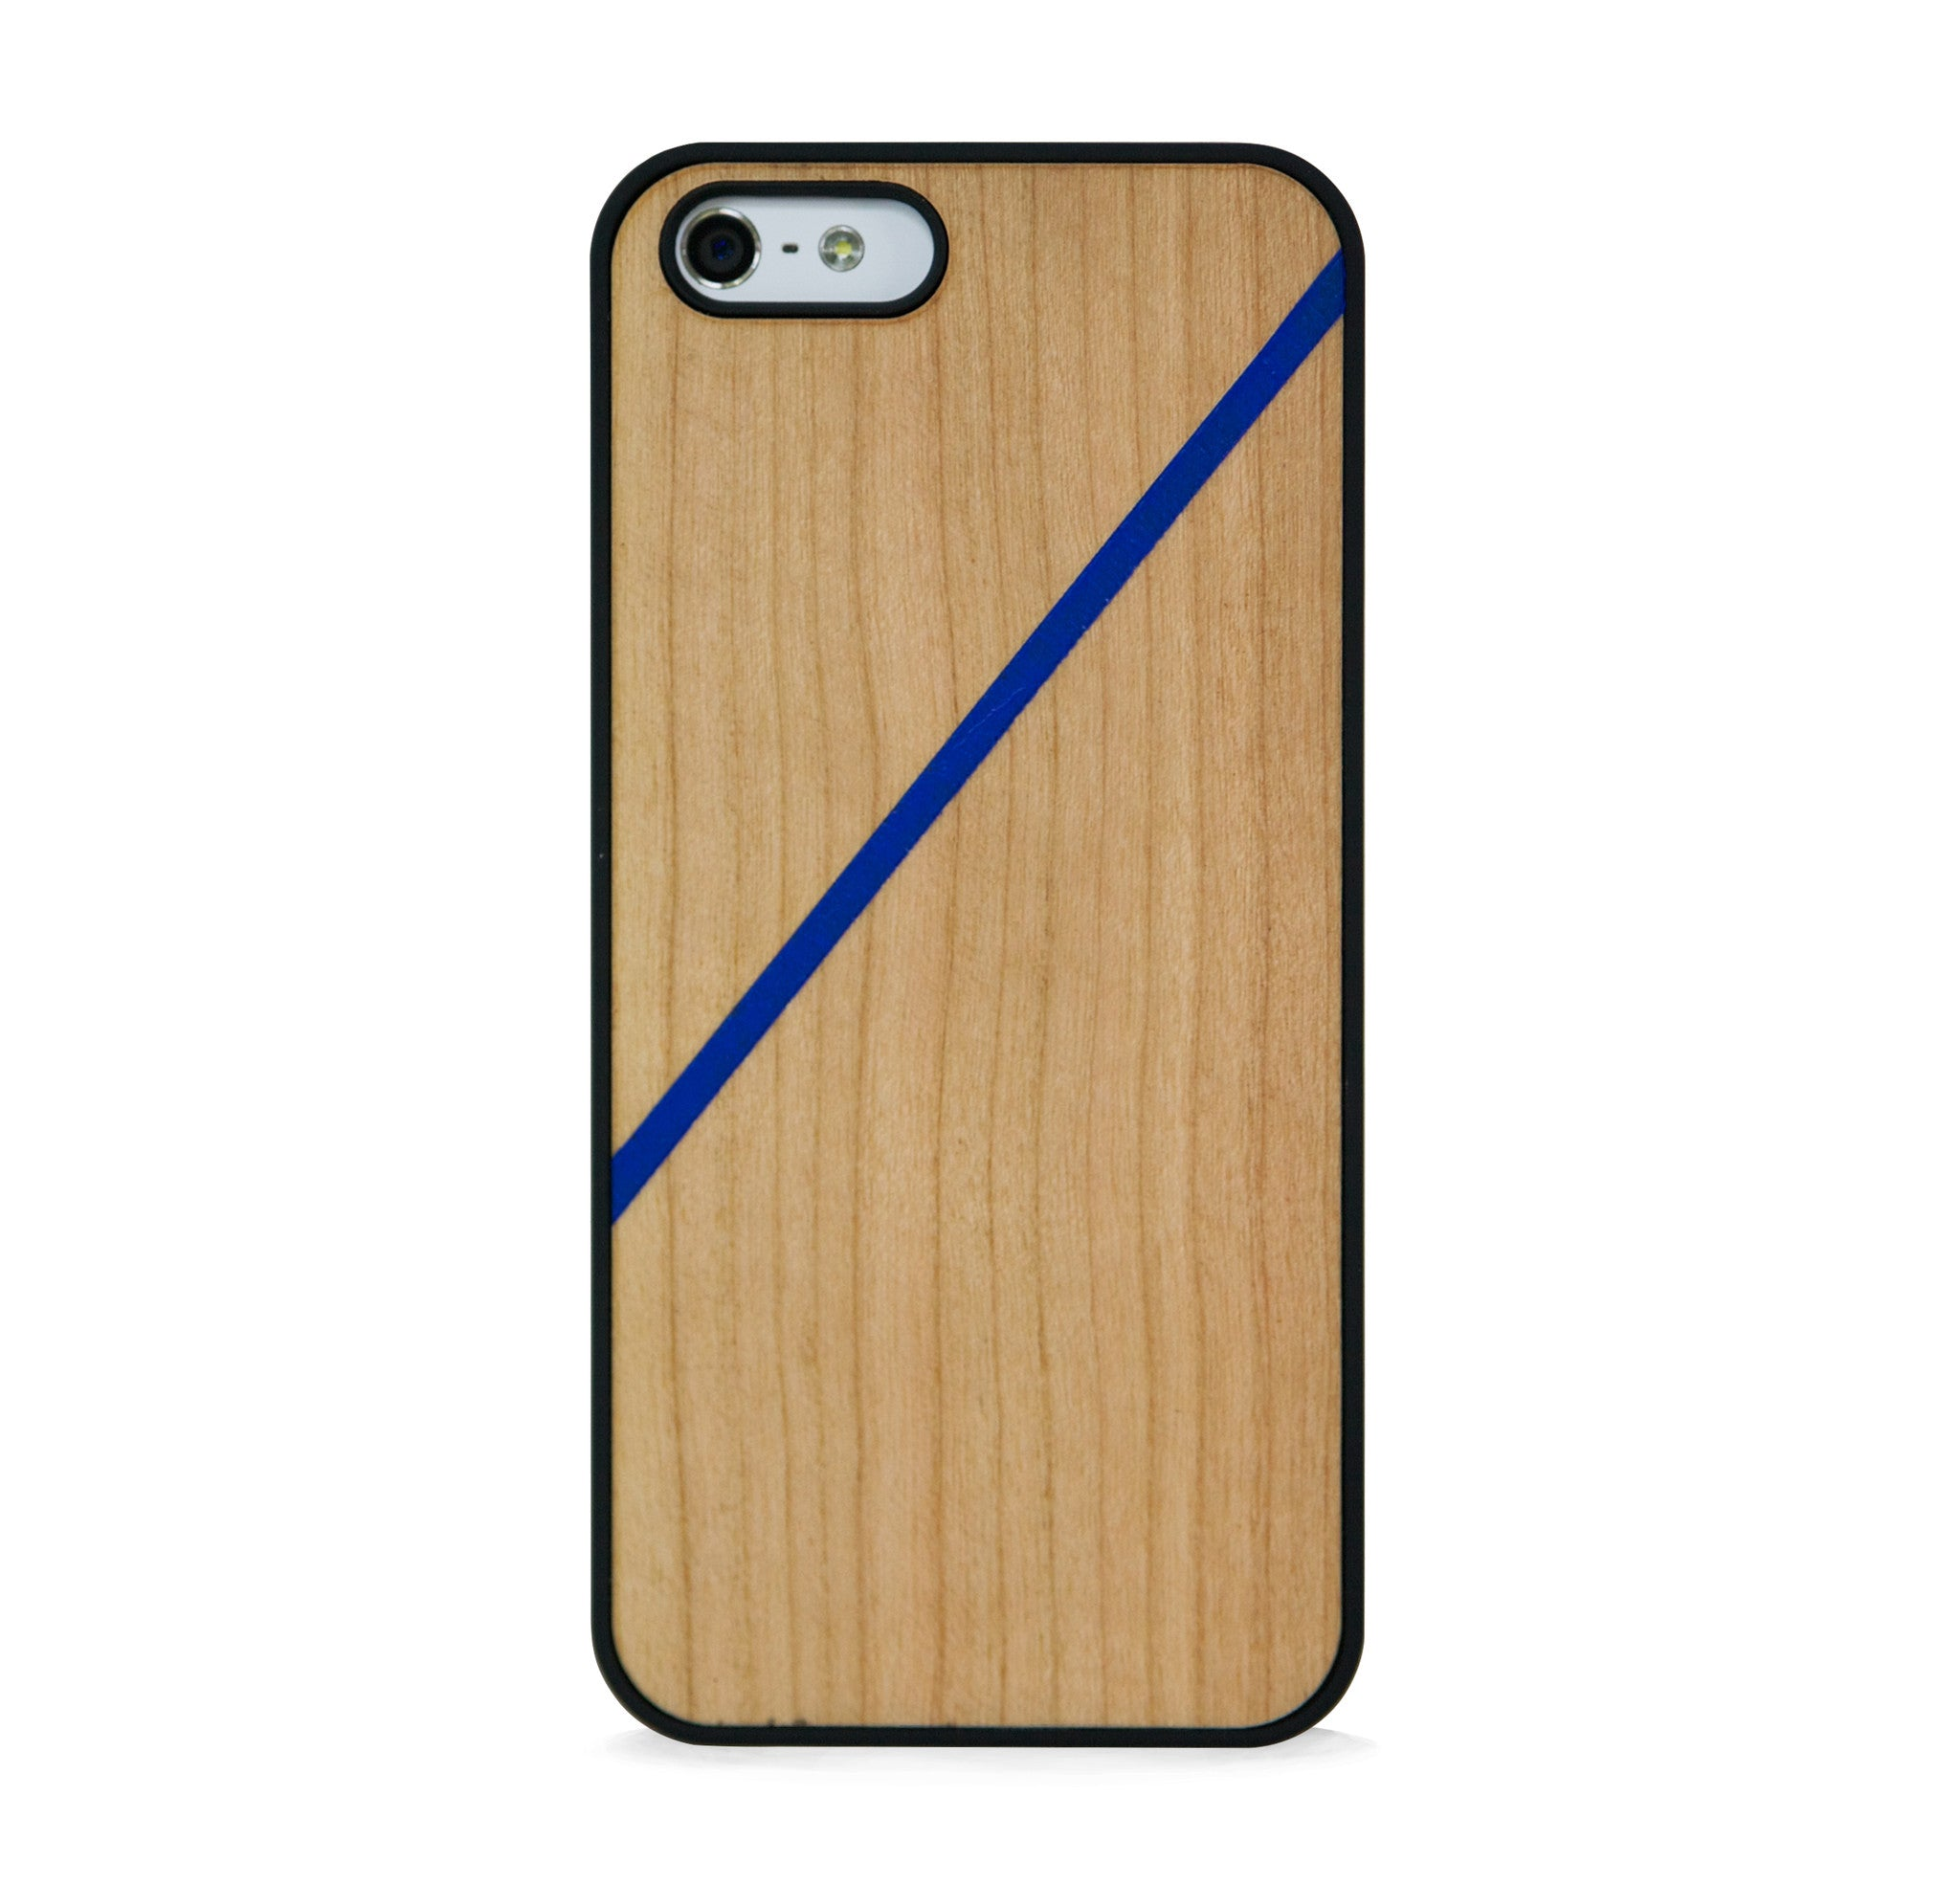 *WOOD CASE LINE COLOR BLOCK ROYAL BLUE FOR IPHONE 5/5s, IPHONE SE